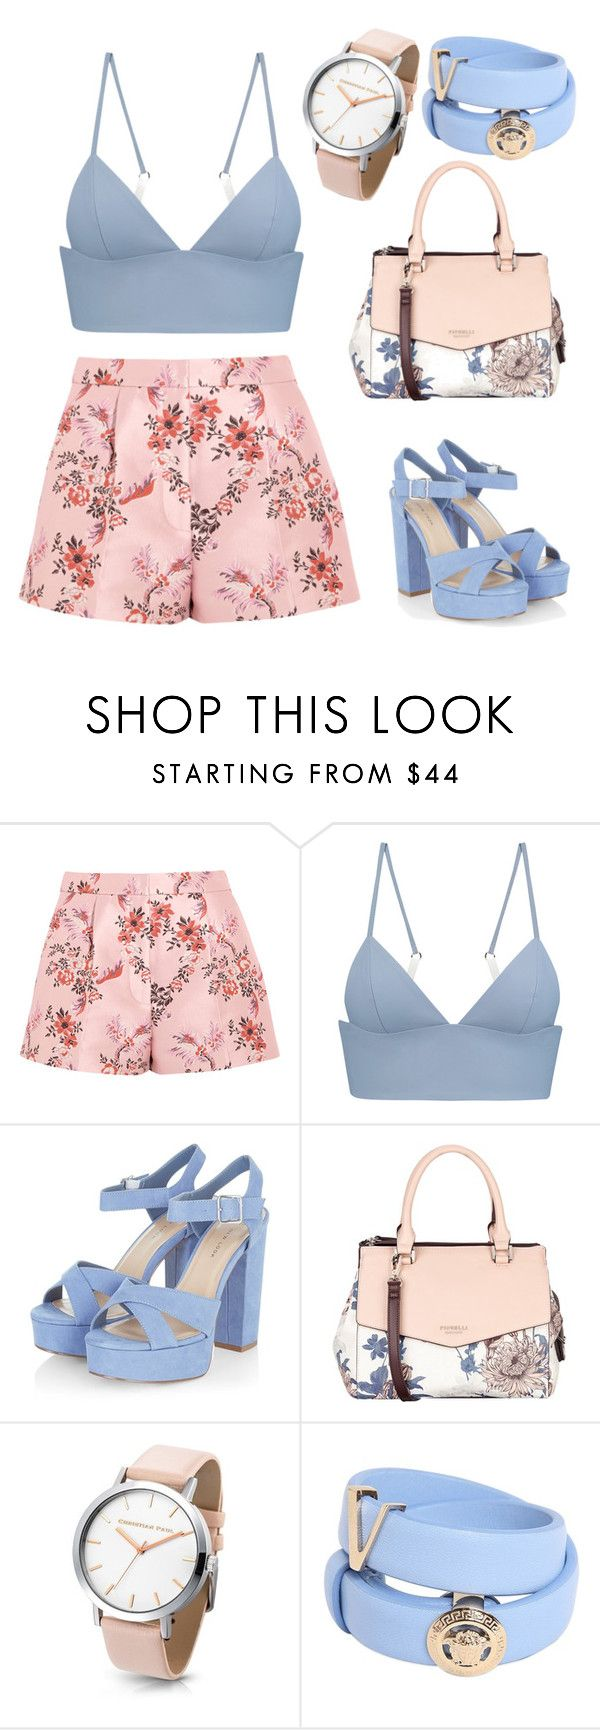 """Untitled #28"" by liszaunicorn ❤ liked on Polyvore featuring STELLA McCARTNEY, T By Alexander Wang, Fiorelli, Versace and printedshorts"